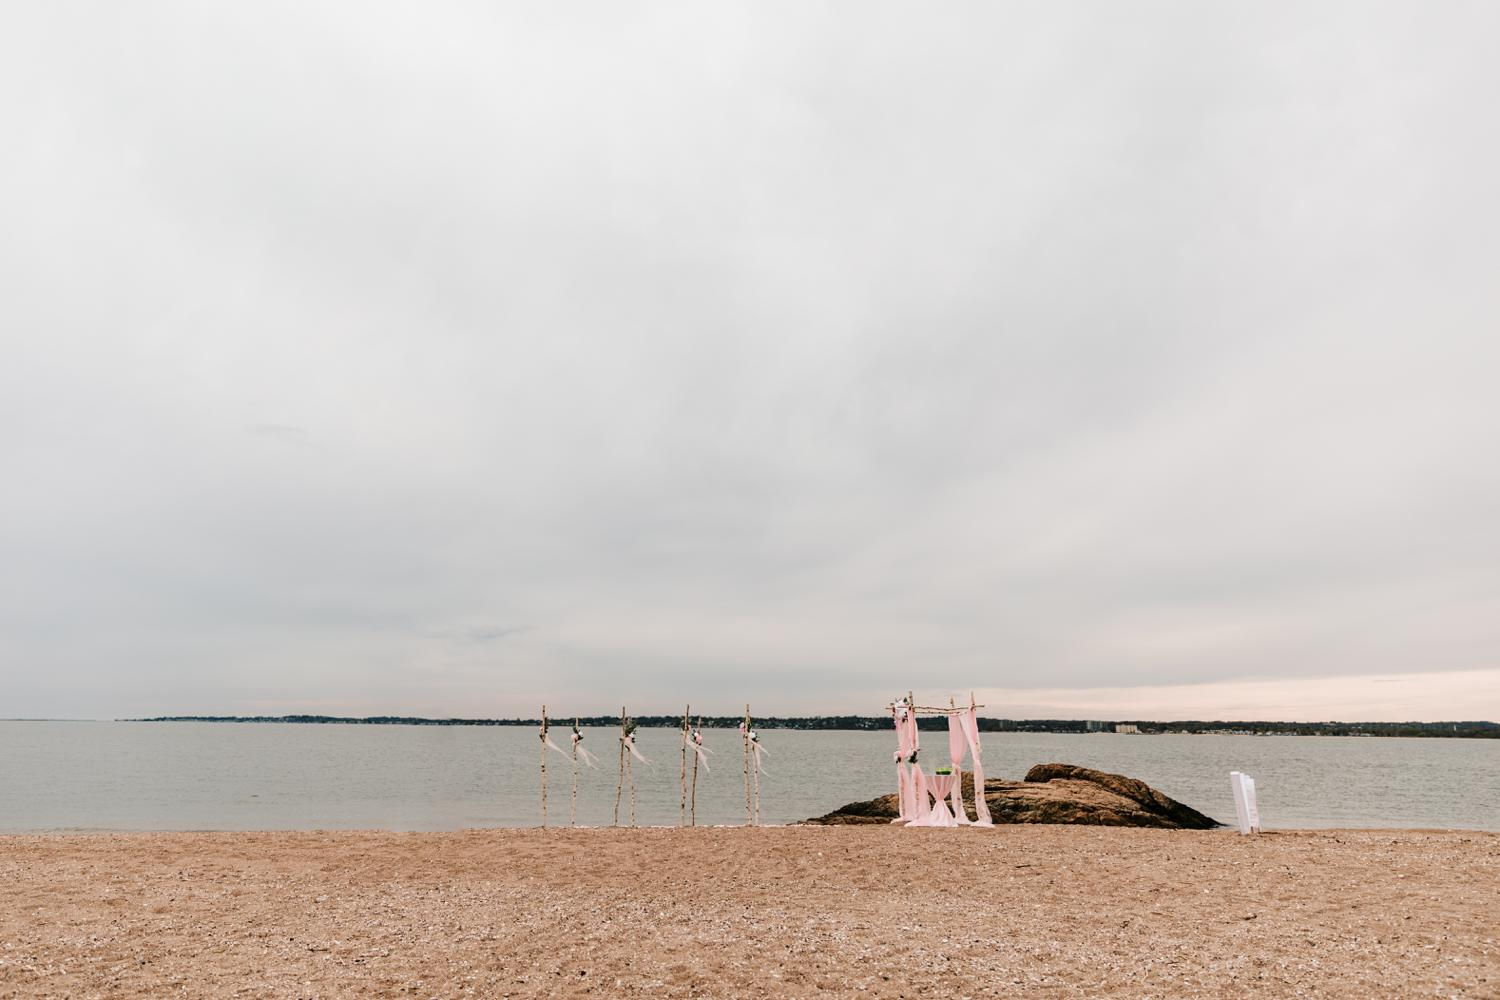 Beach ceremony setup for wedding day